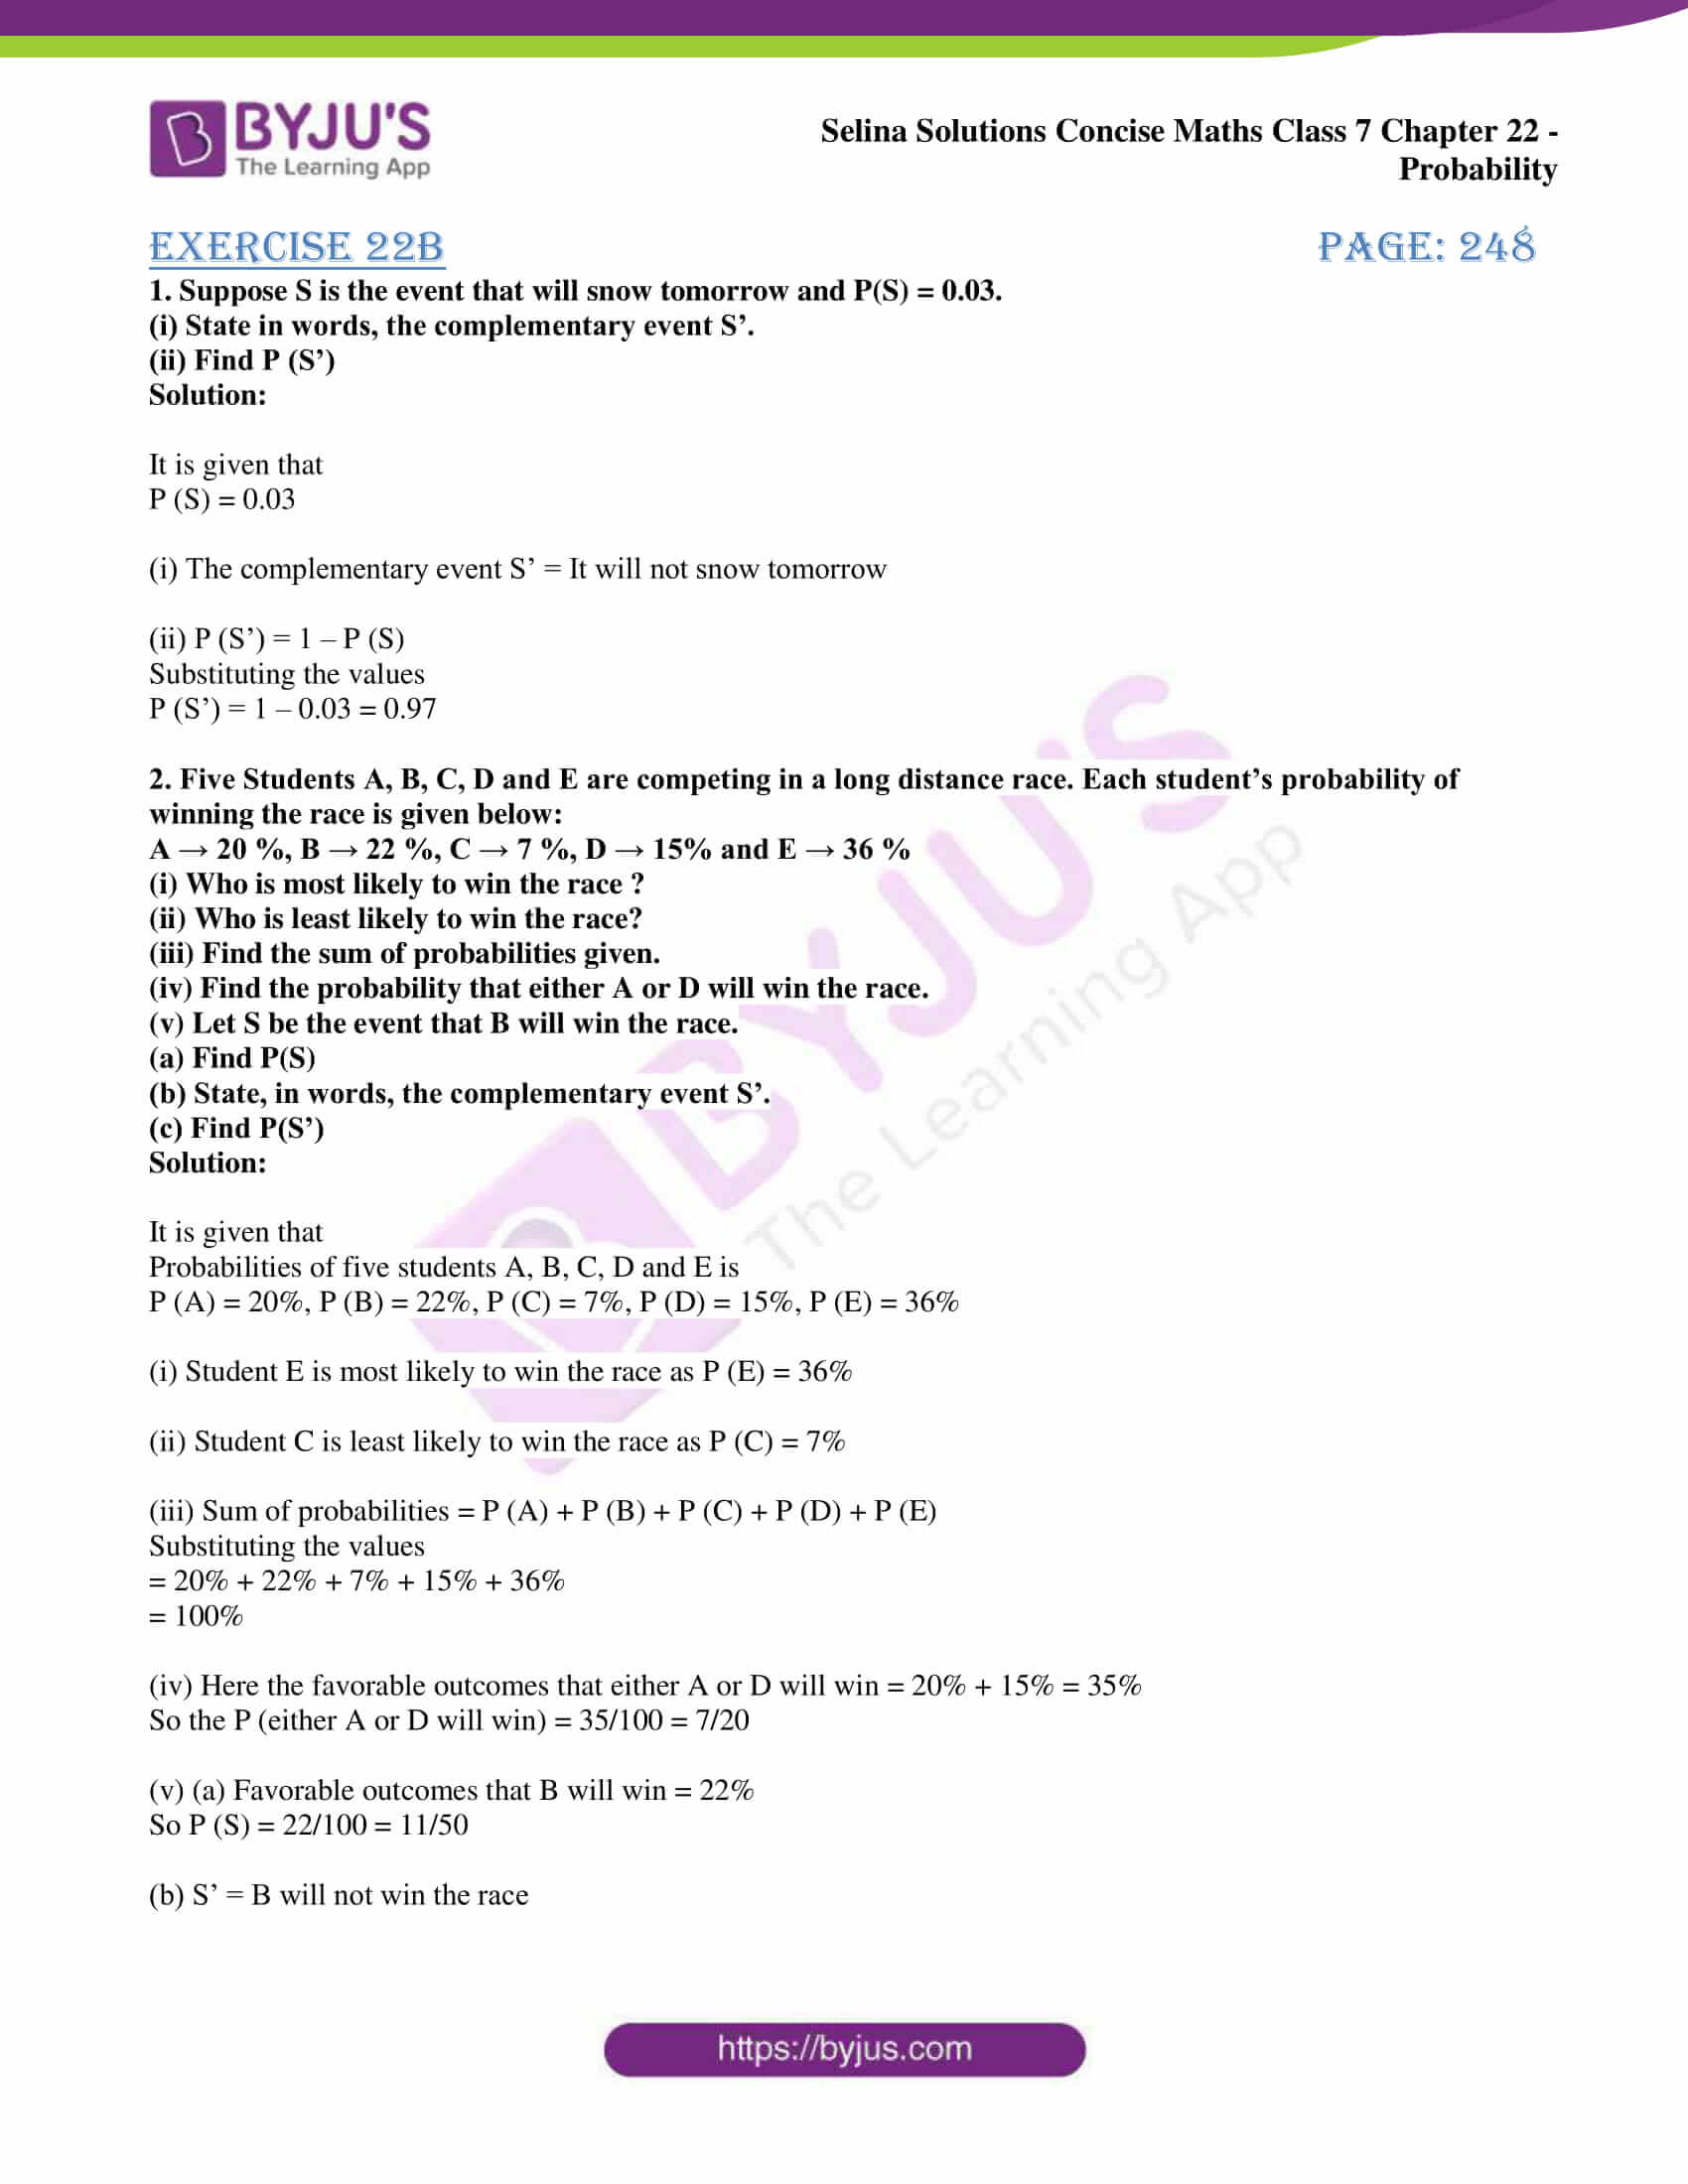 selina sol concise maths class 7 chapter 22 ex b 1